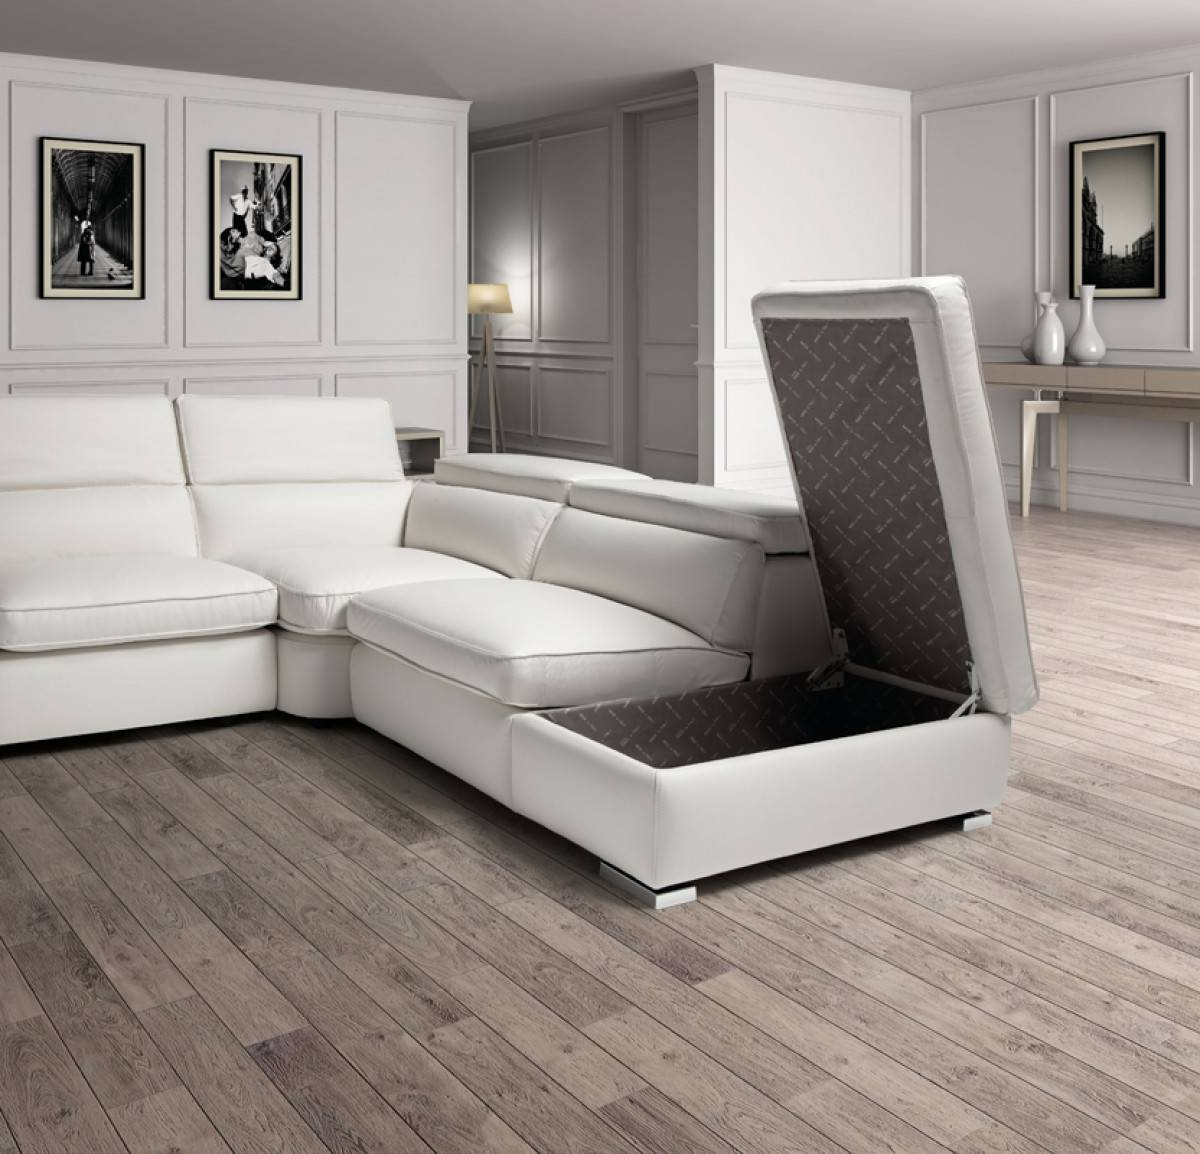 Italian Leather Sectional Sofas: High End 100% Italian Leather Sectional Brownsville Texas